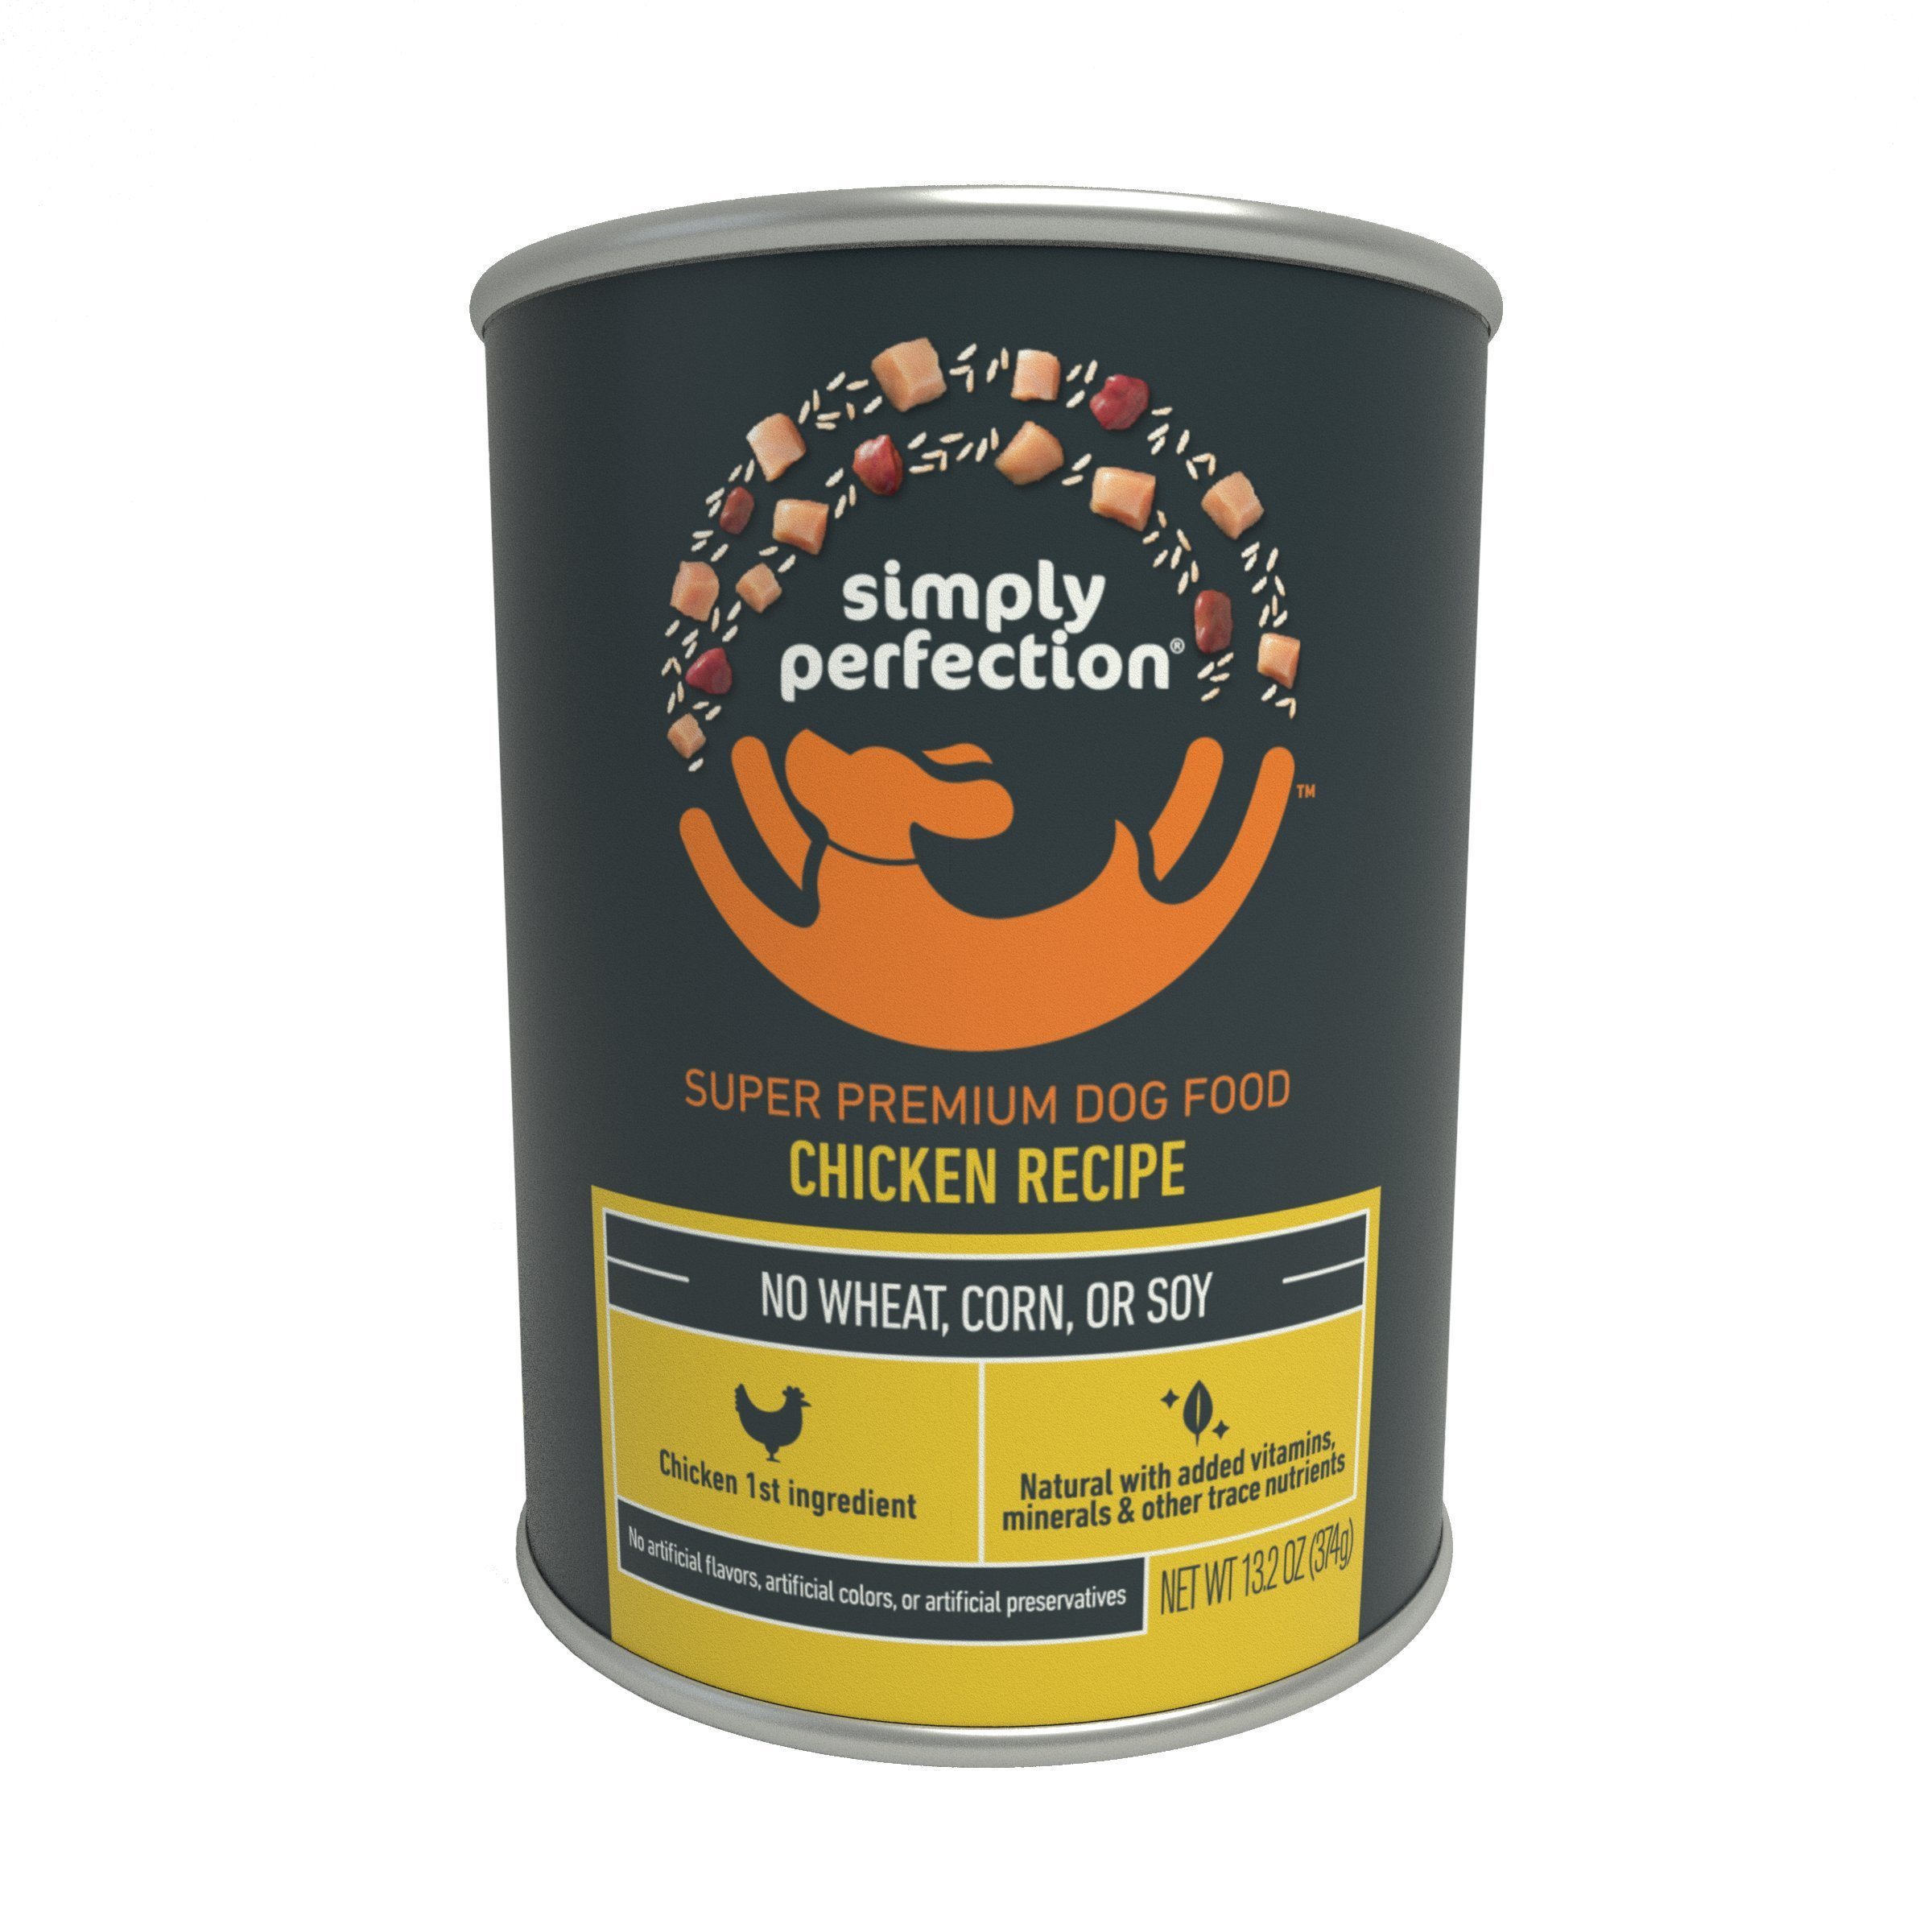 Simply Perfection Super Premium Chicken Recipe Canned Dog Food 79.2oz Case, 6 cans